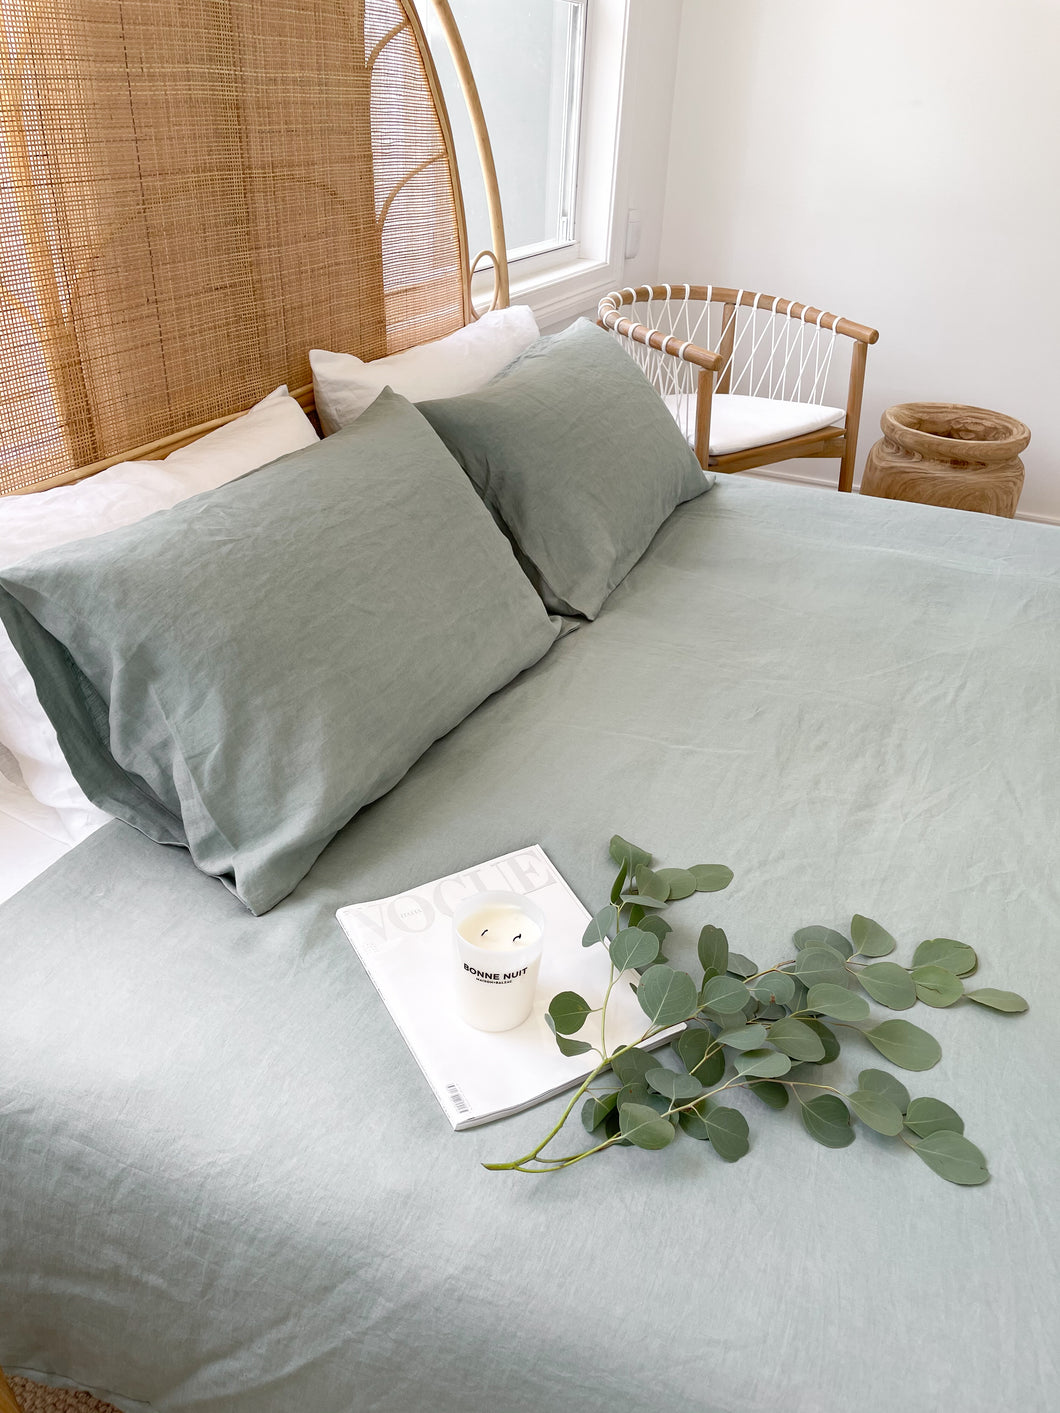 Pair of Linen Pillowcases - Eucalyptus